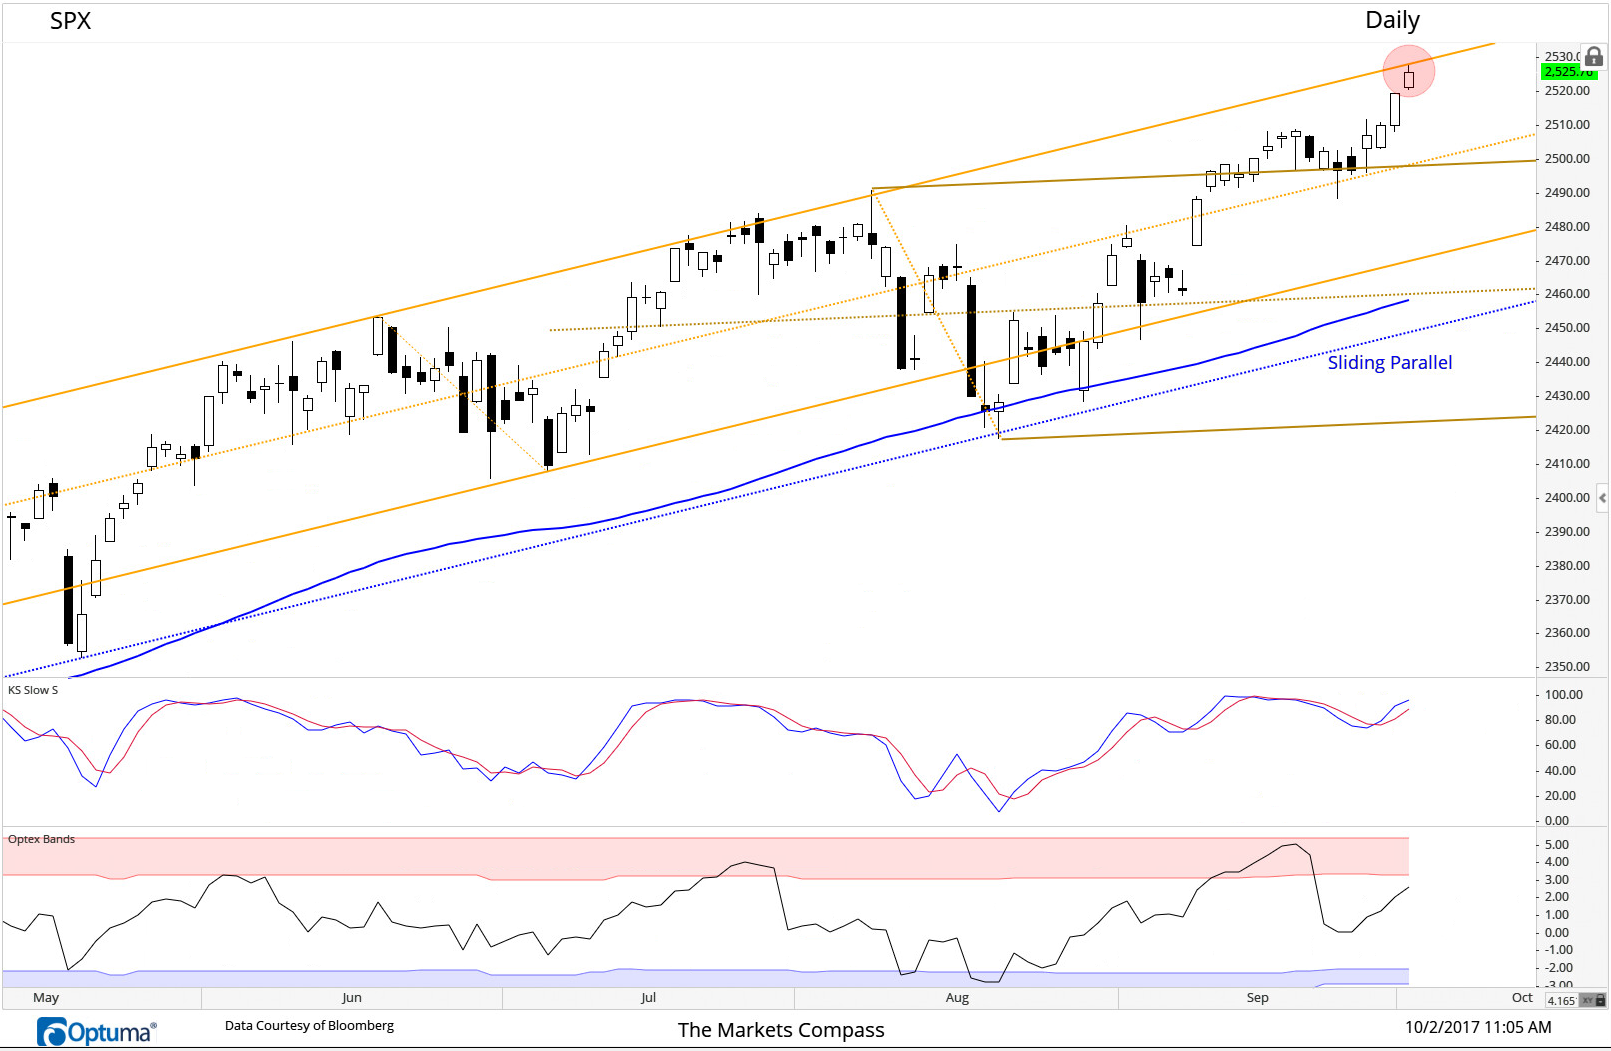 The 4-day advance from support at the Schiff Adjusted Median Line on the Daily S&P 500 Index Candlestick chart has driven prices to potential resistance at the Upper Parallel of the Pitchfork.